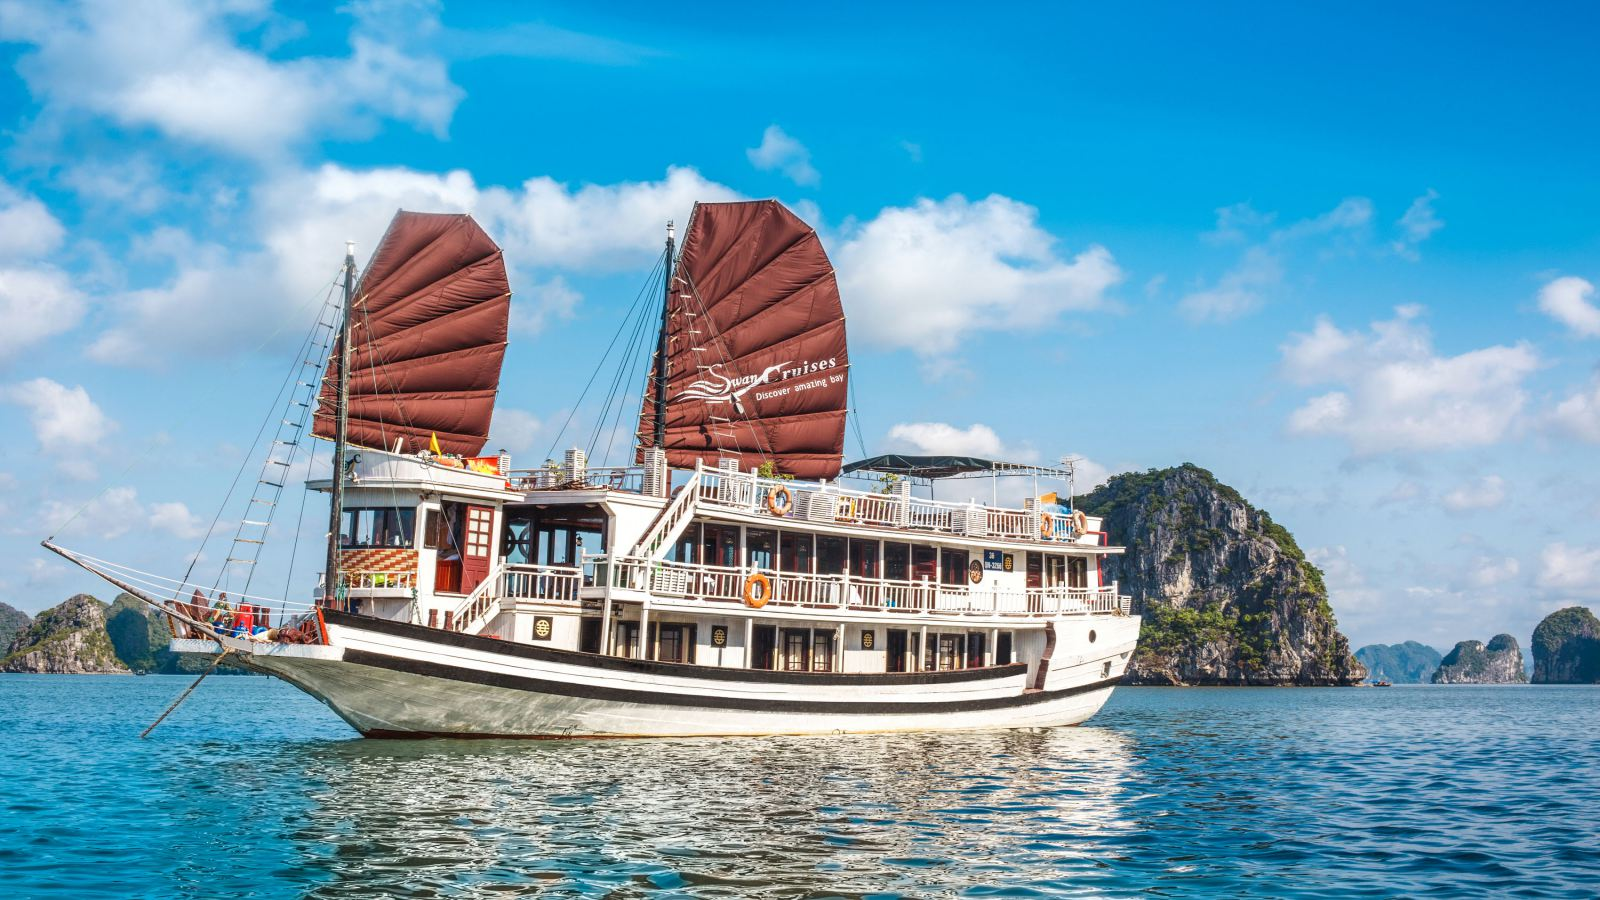 TIPS FOR CHOOSING THE BEST HALONG BAY CRUISE TOUR